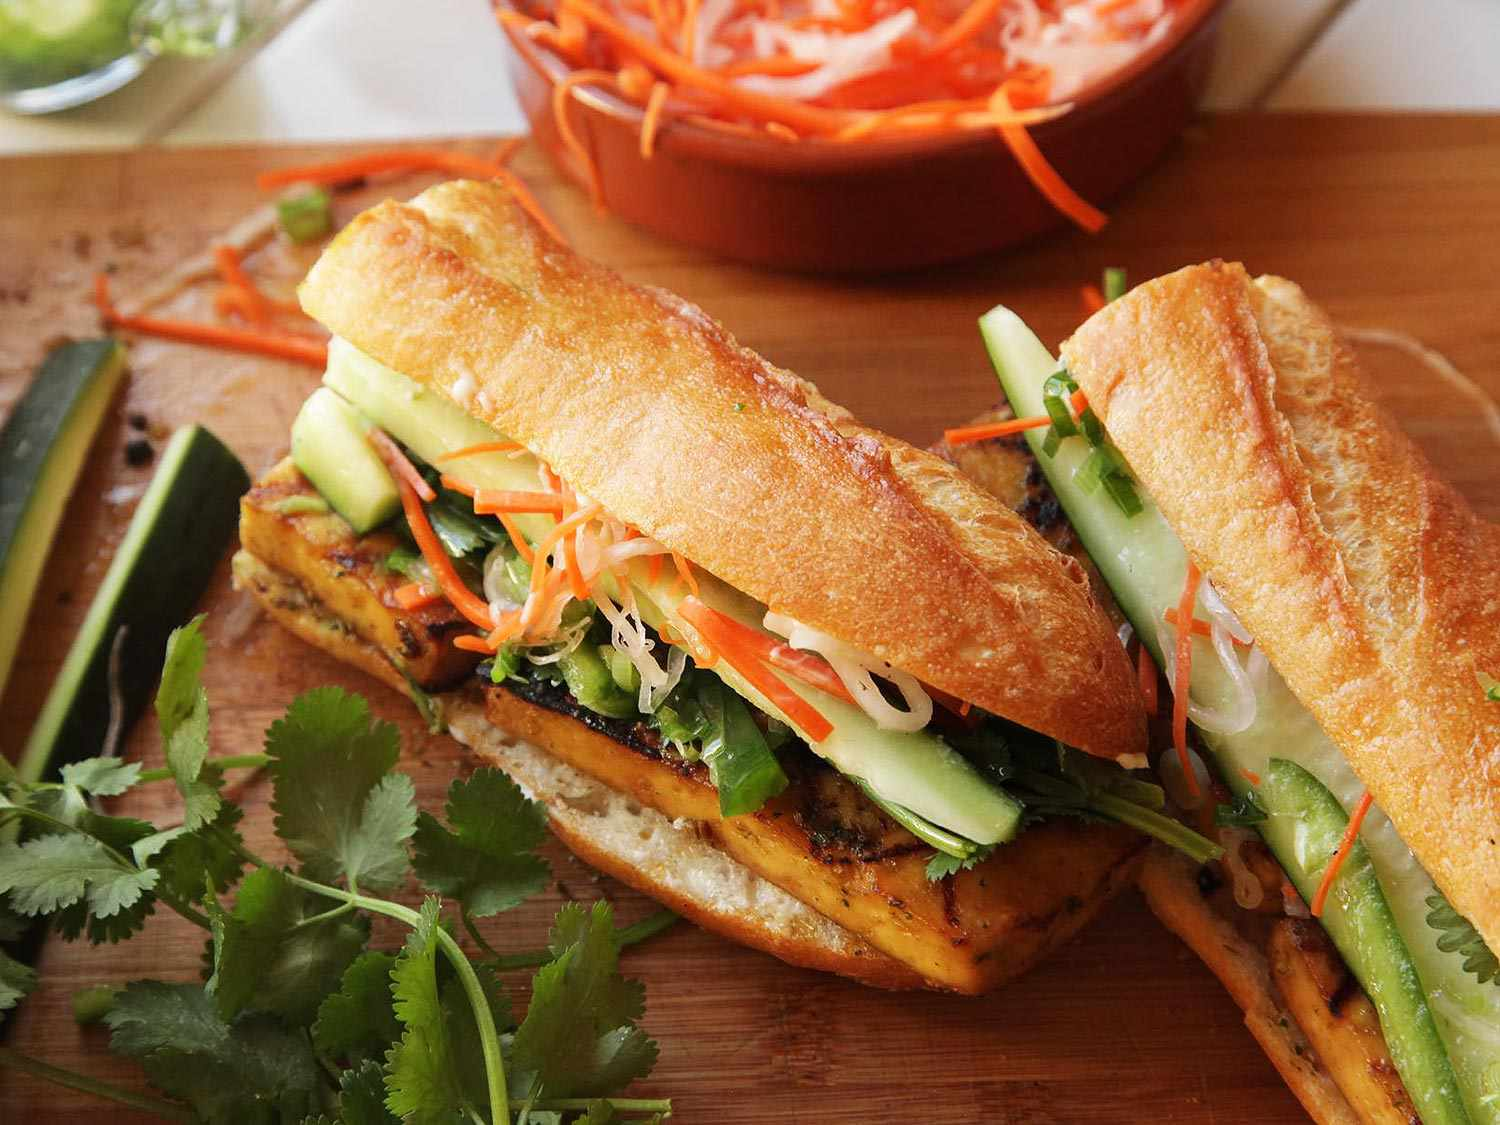 Lemongrass- and coriander-marinated tofu banh mi sandwiches, topped with cucumber, carrot, cilantro, and jalapeño